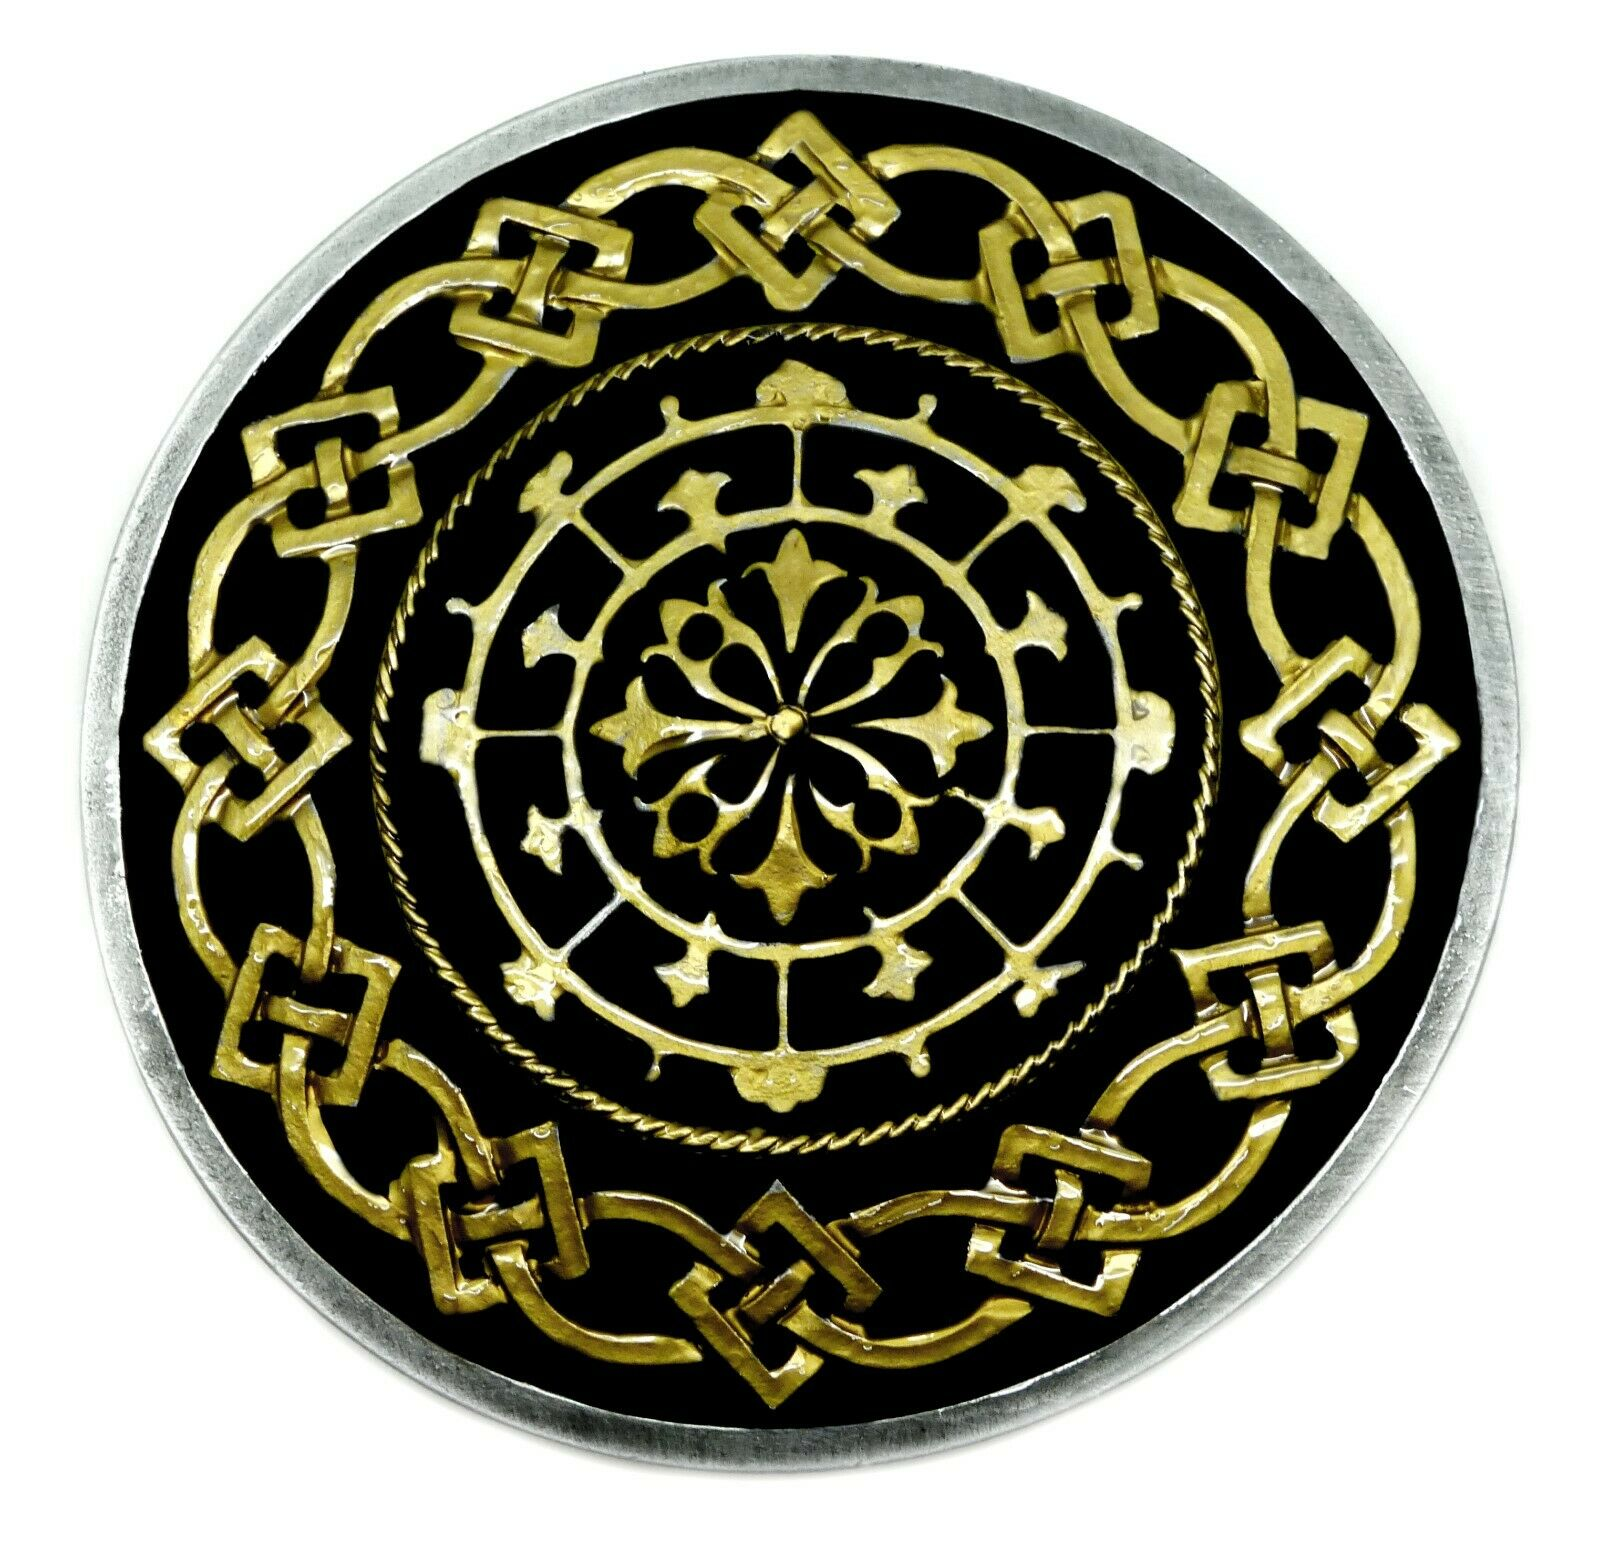 Celtic Knot Belt Buckle Circular Black & Gold Authentic Dragon Designs Product